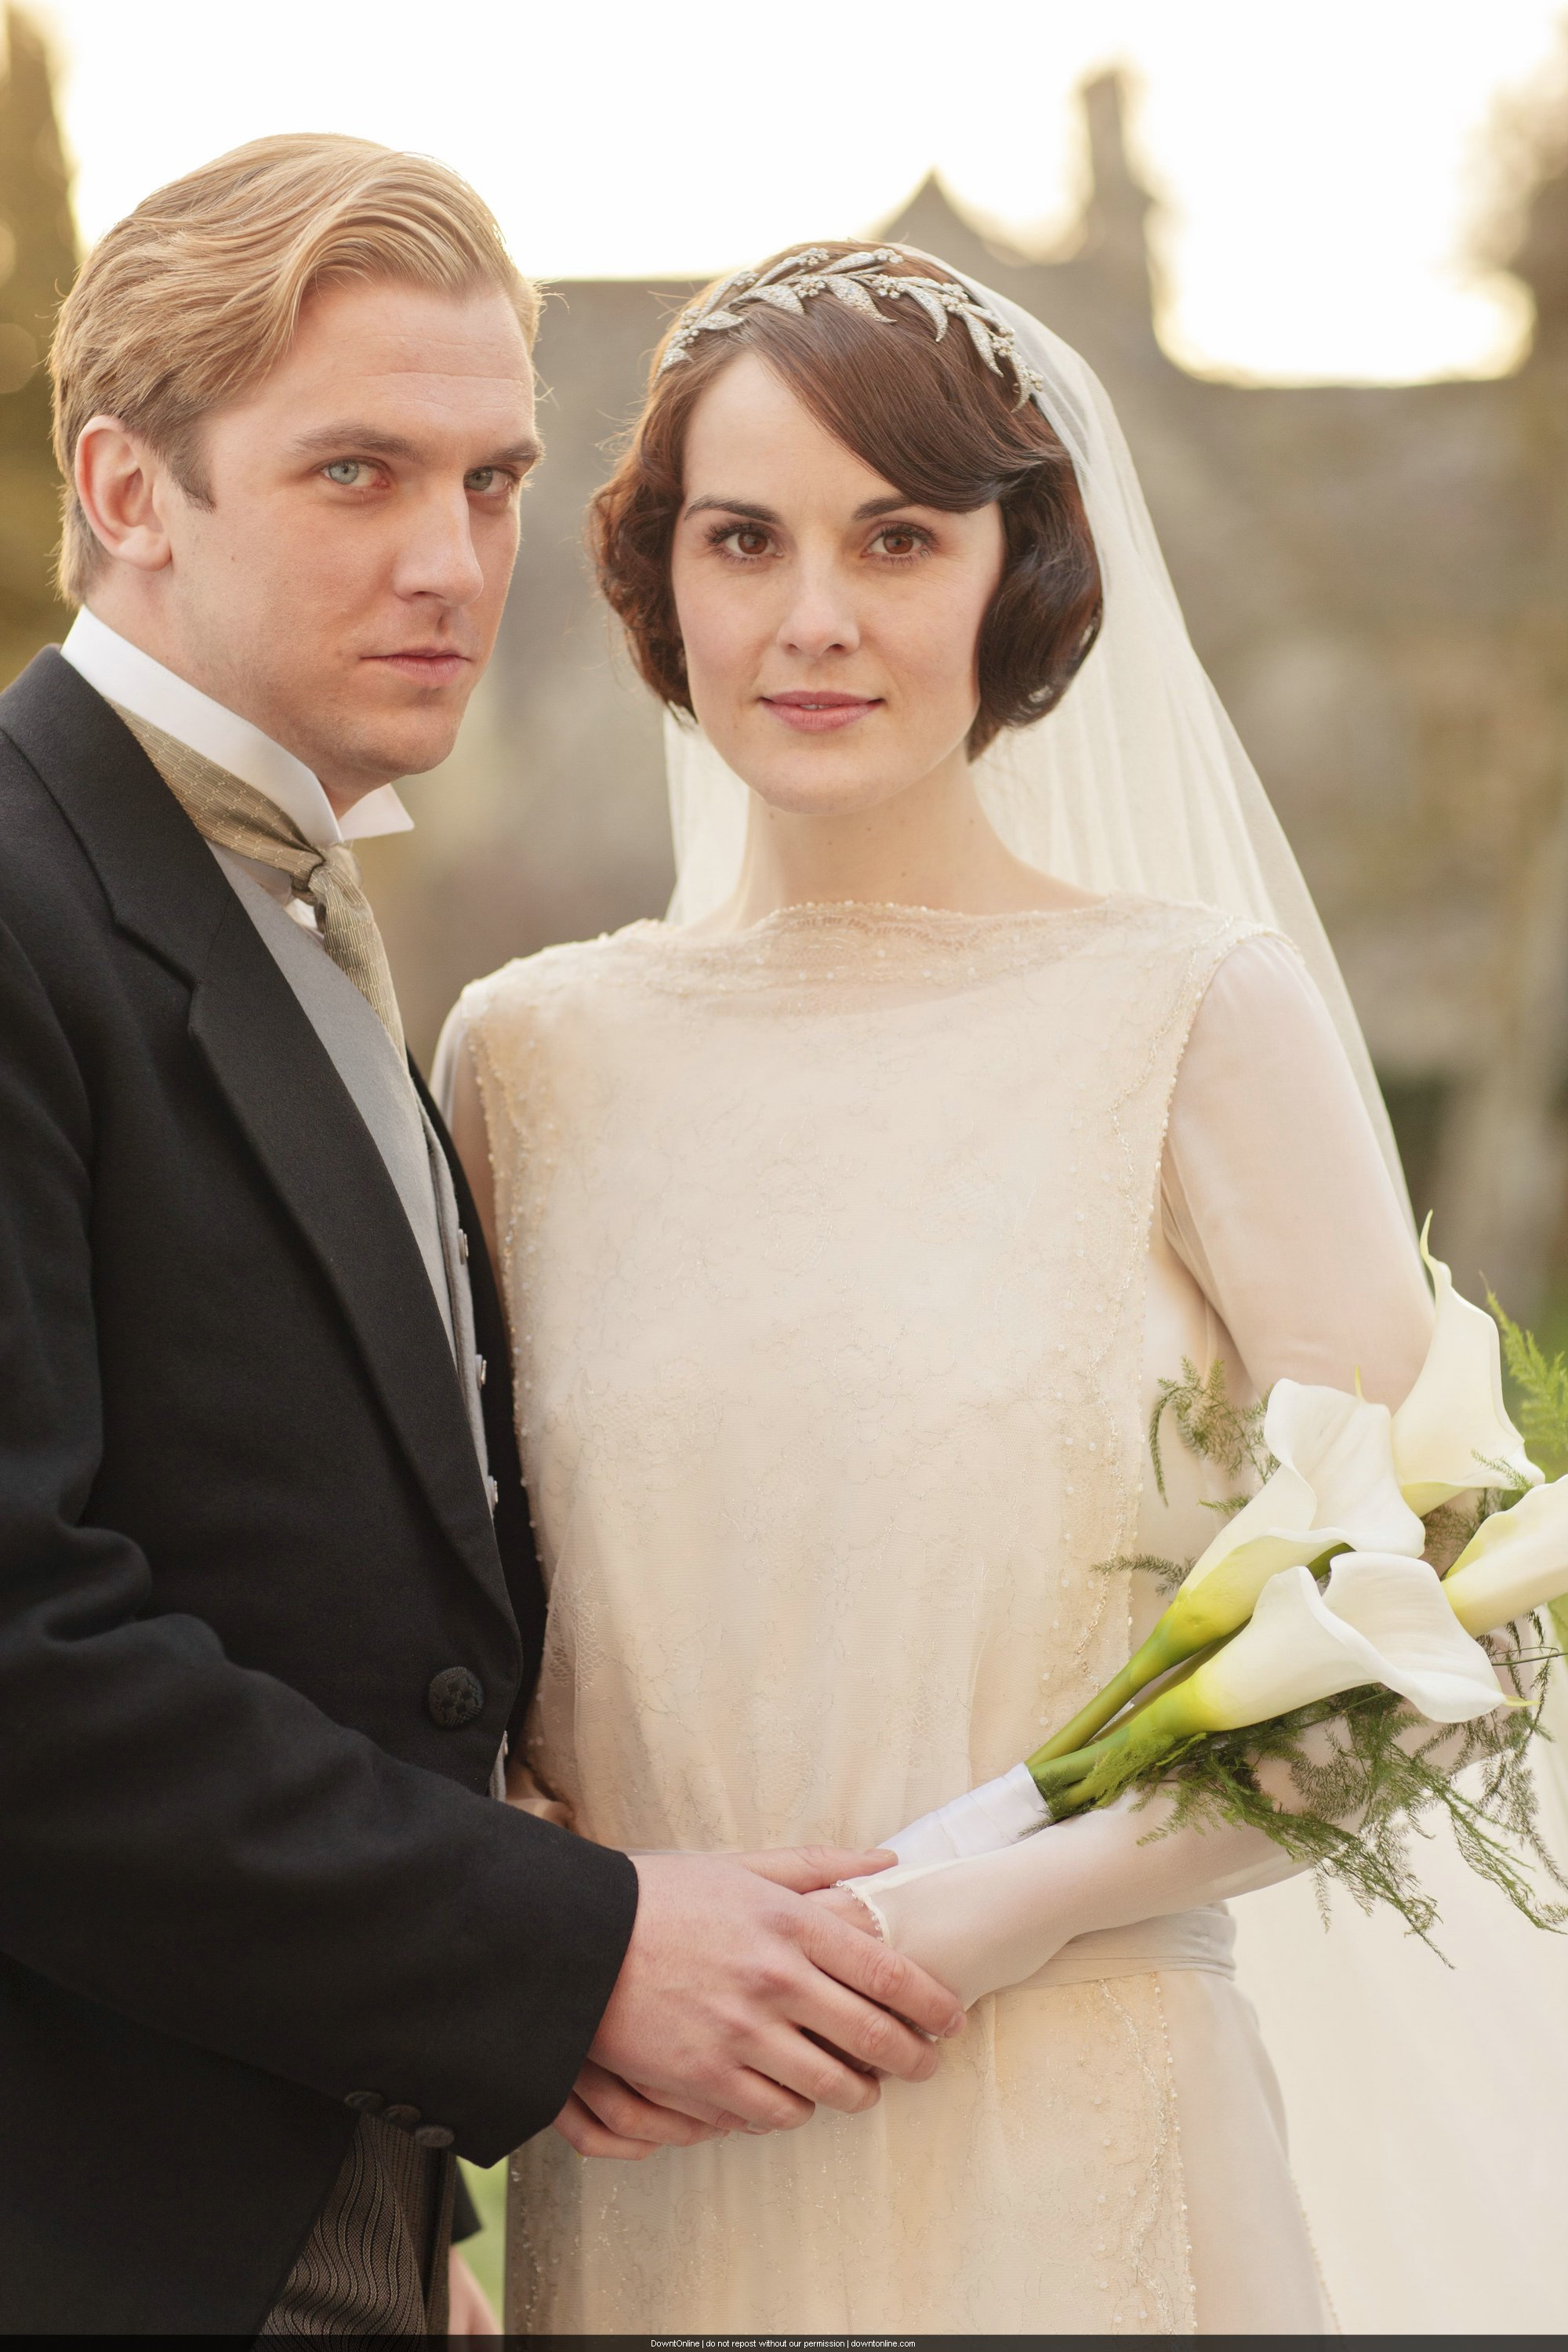 mary and matthew wedding downton abbey valent 253 nsk 253